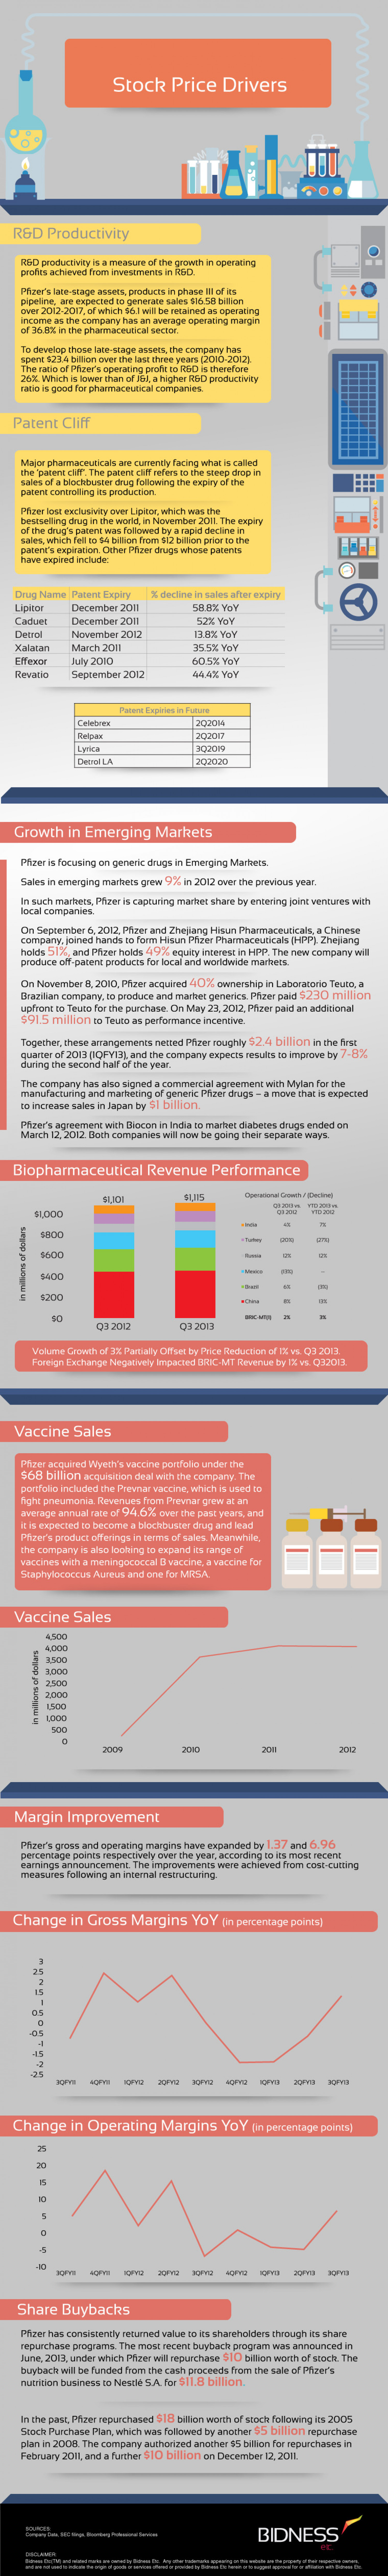 Pfizer (PFE) Stock Price Drivers Infographic